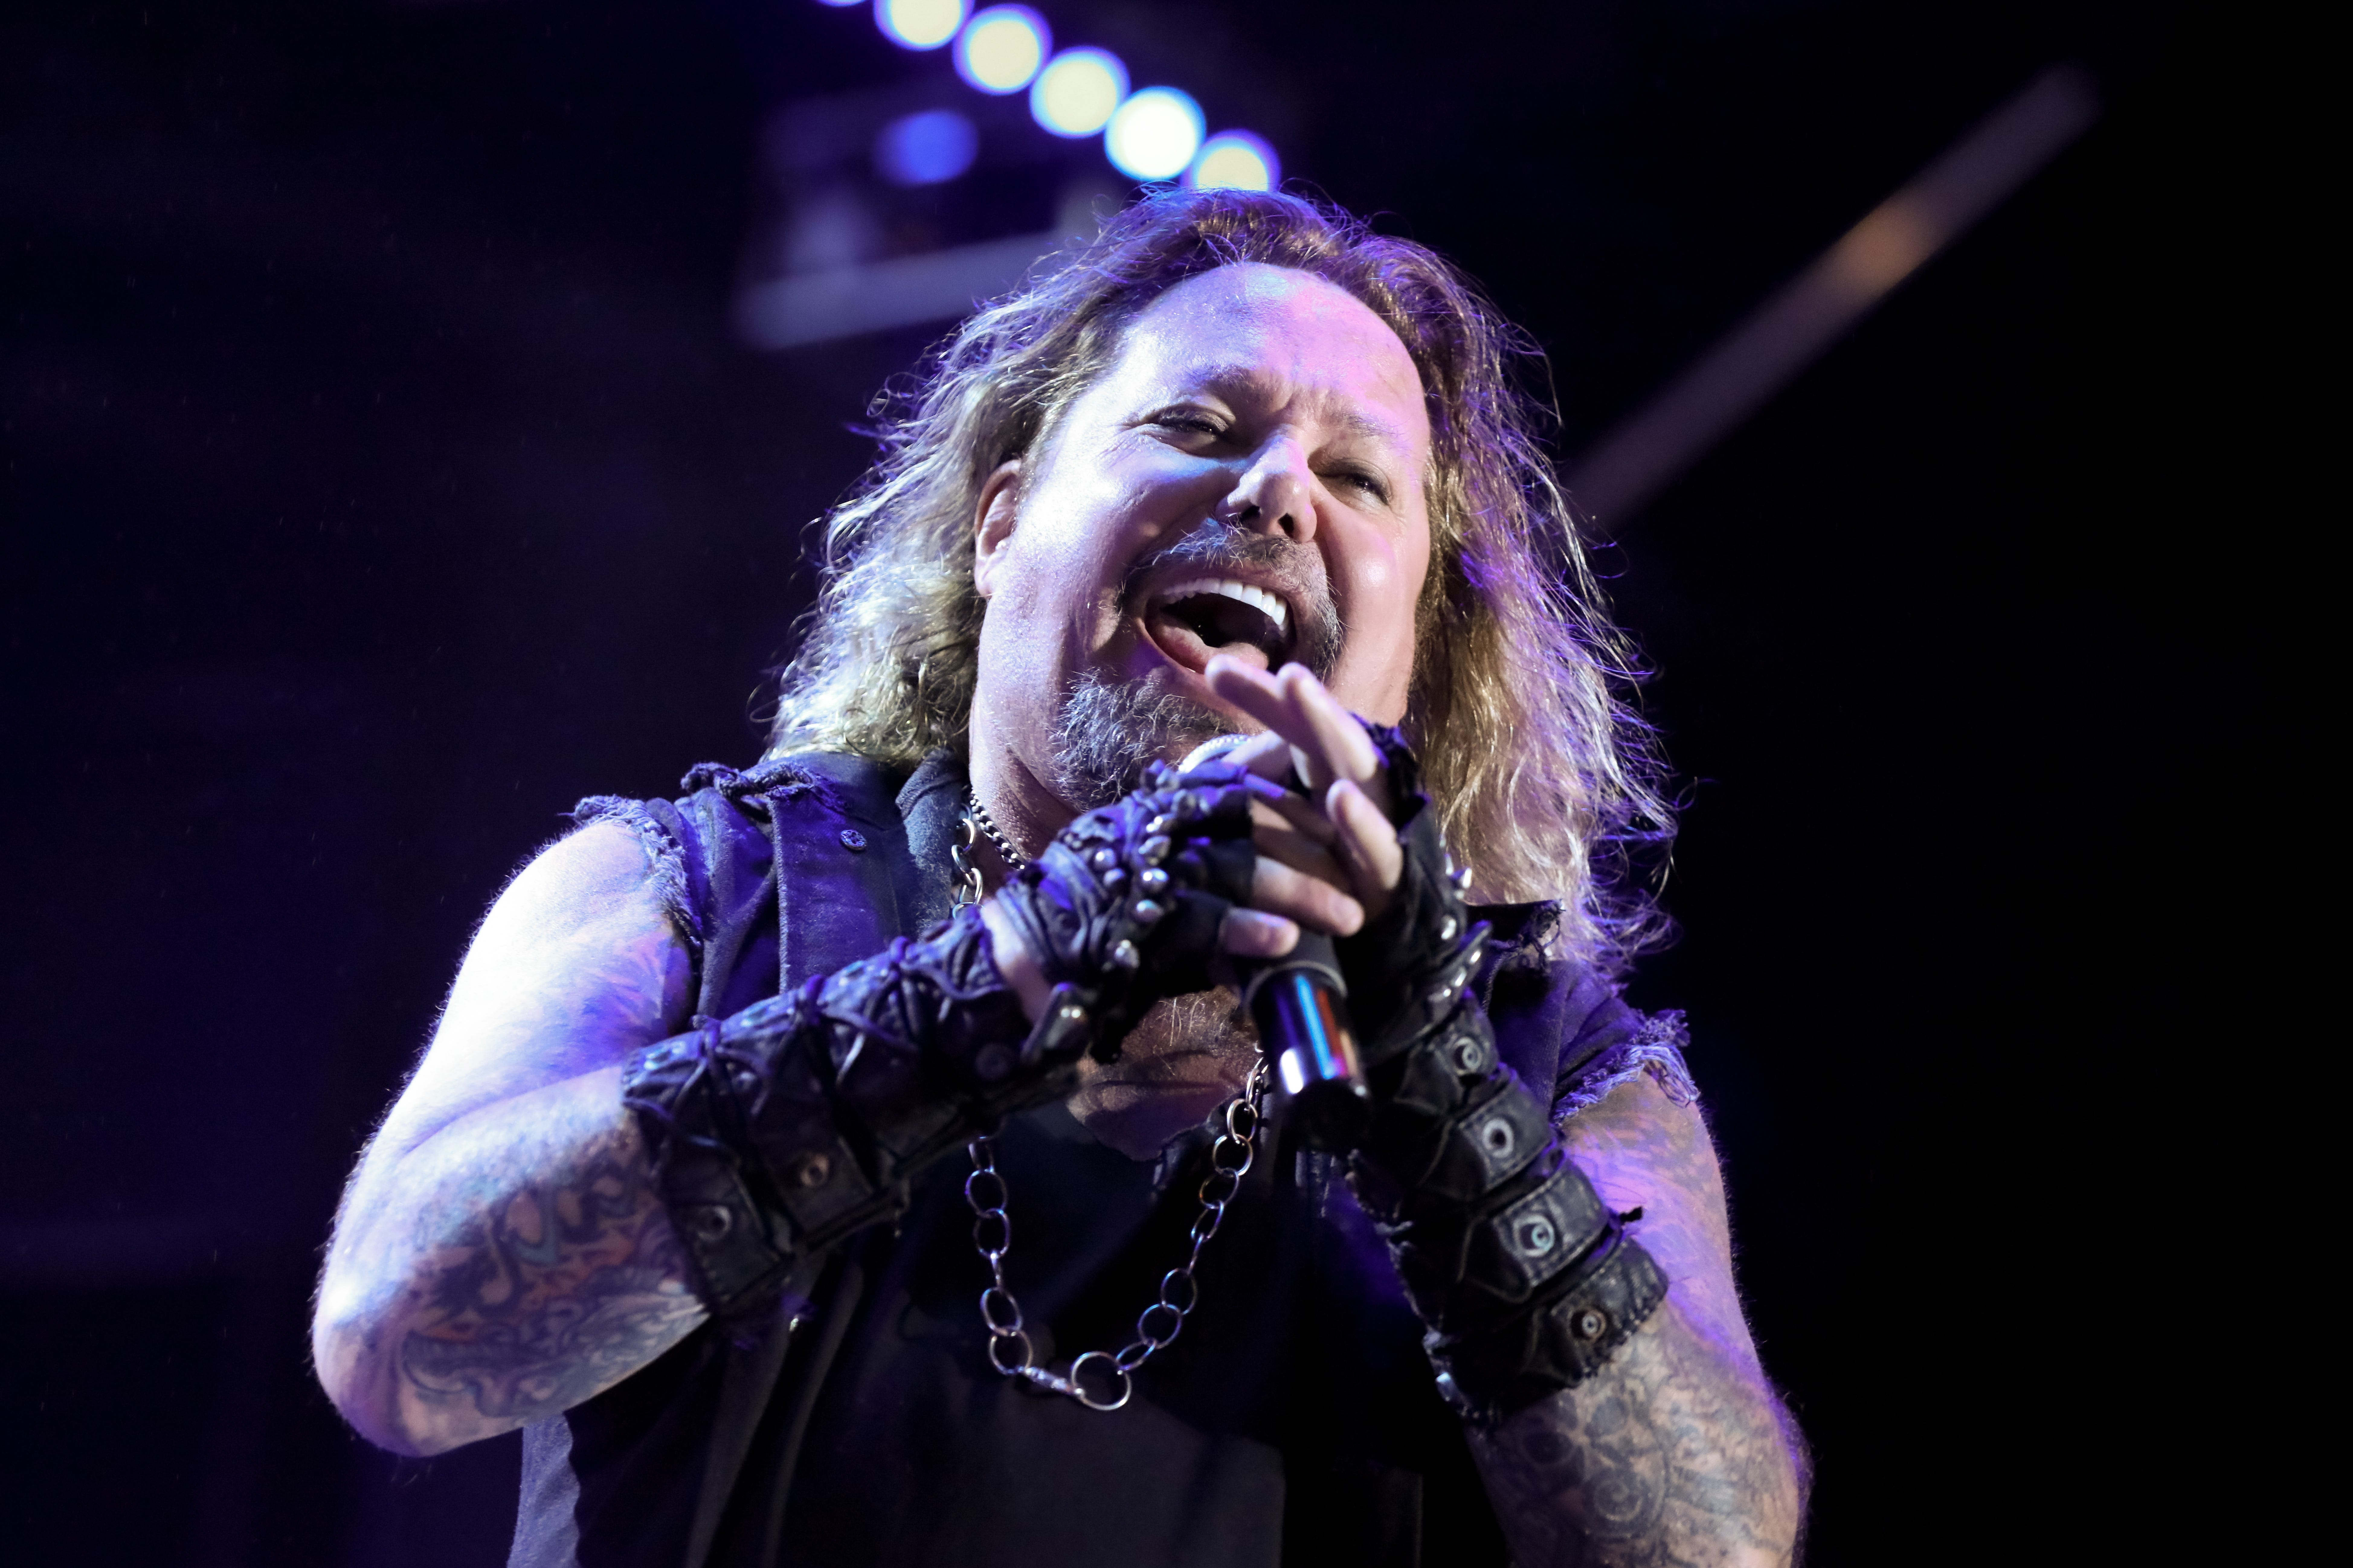 Latest Summerfest 2021 lineup announcements: Vince Neil of Motley Crue at Uline Warehouse, JoJo s Martini Lounge performers